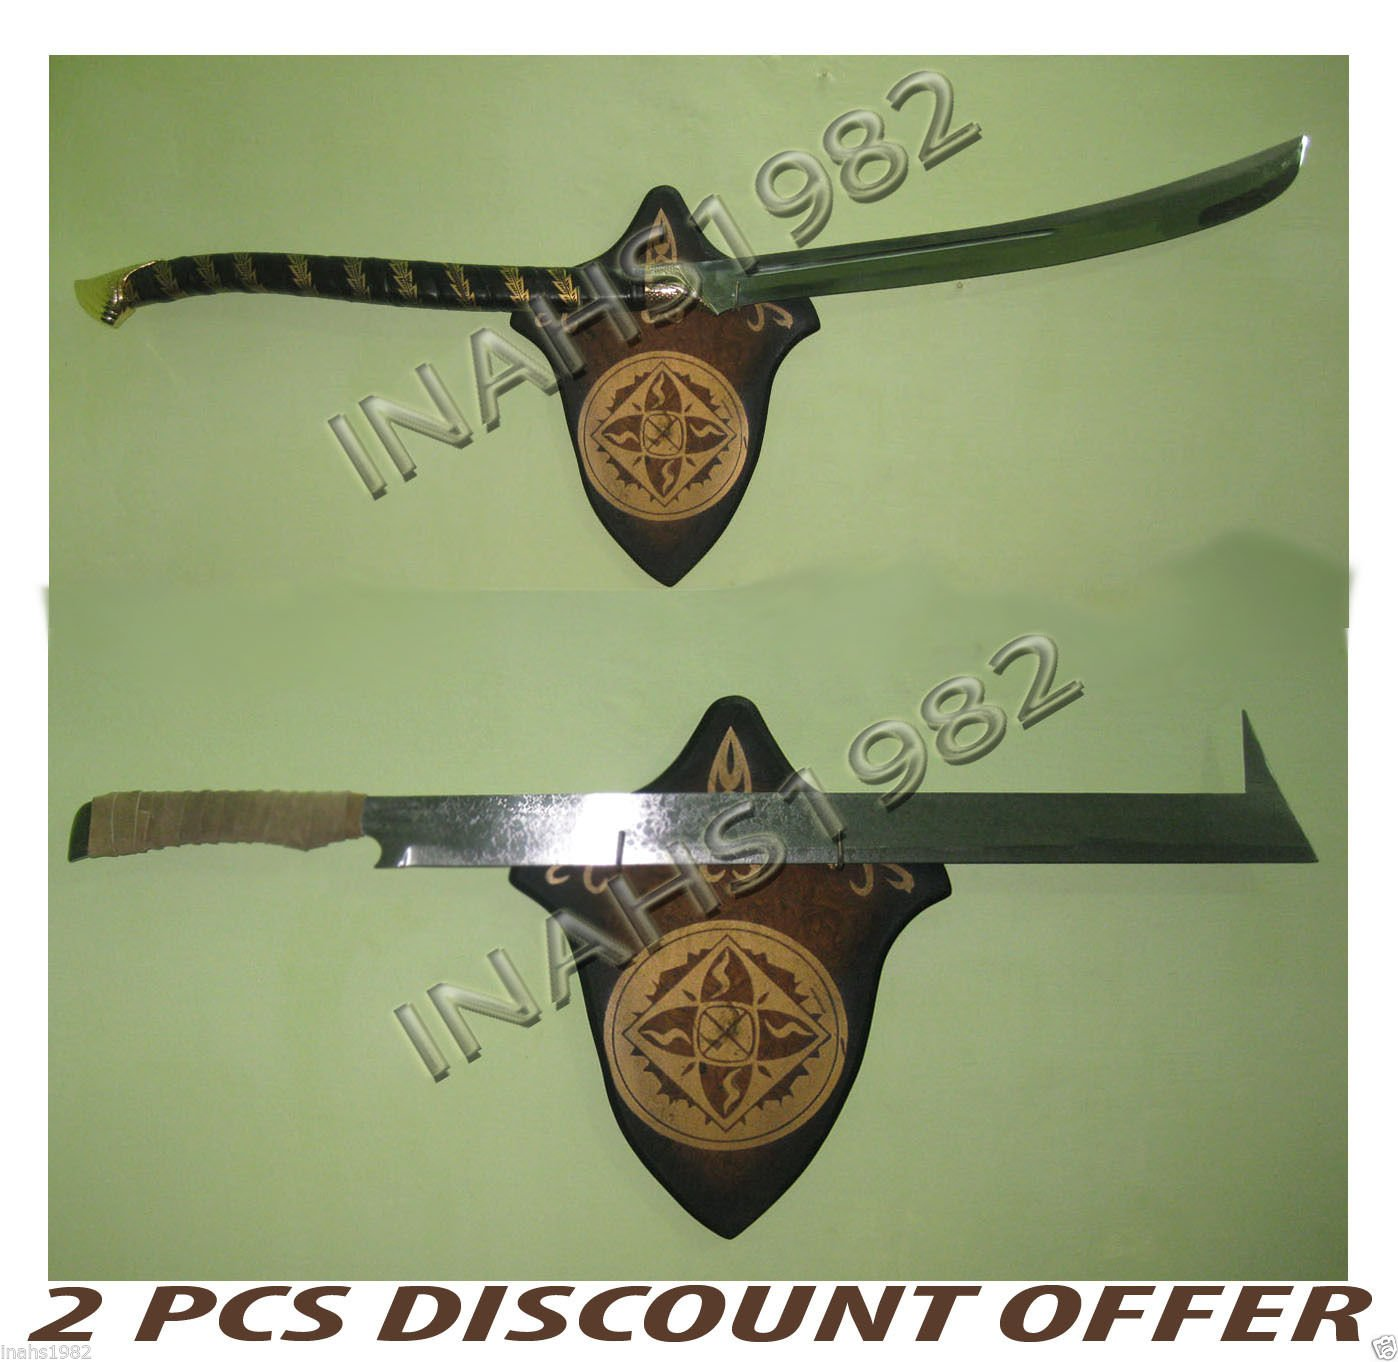 2 PCS High Elven Warrior Sword + Uruk-Hai Scimitar Sword - LOTR With Wall Plaque